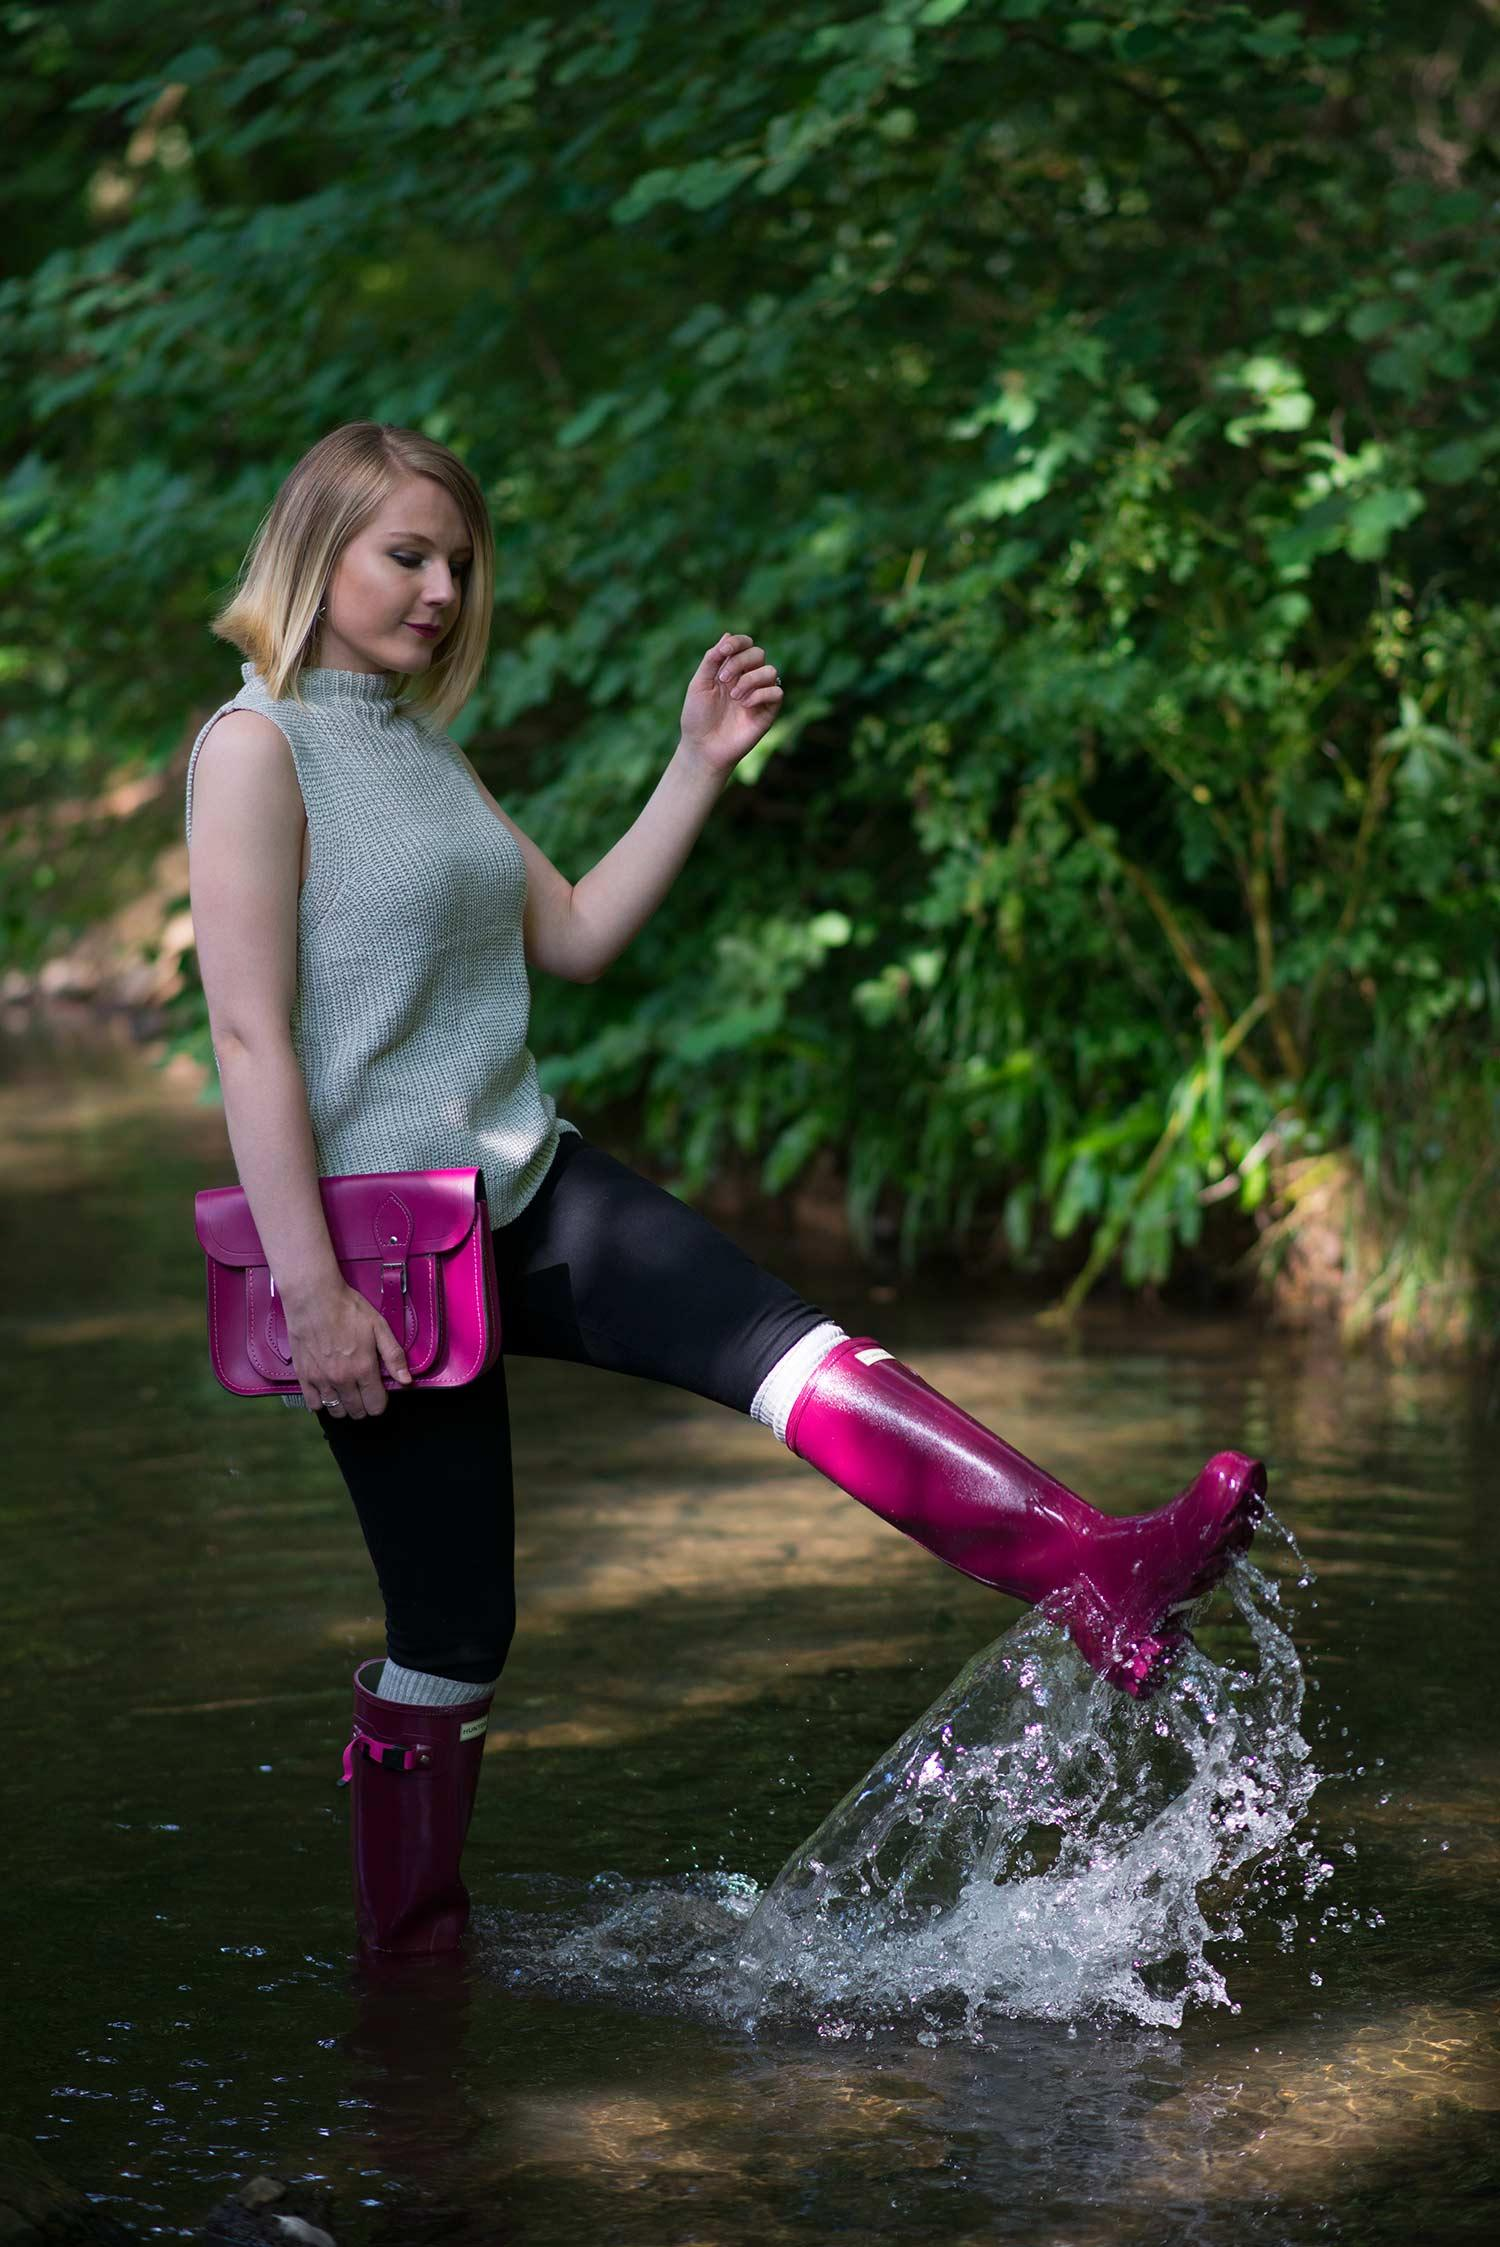 splashing in wellies girl rain boots